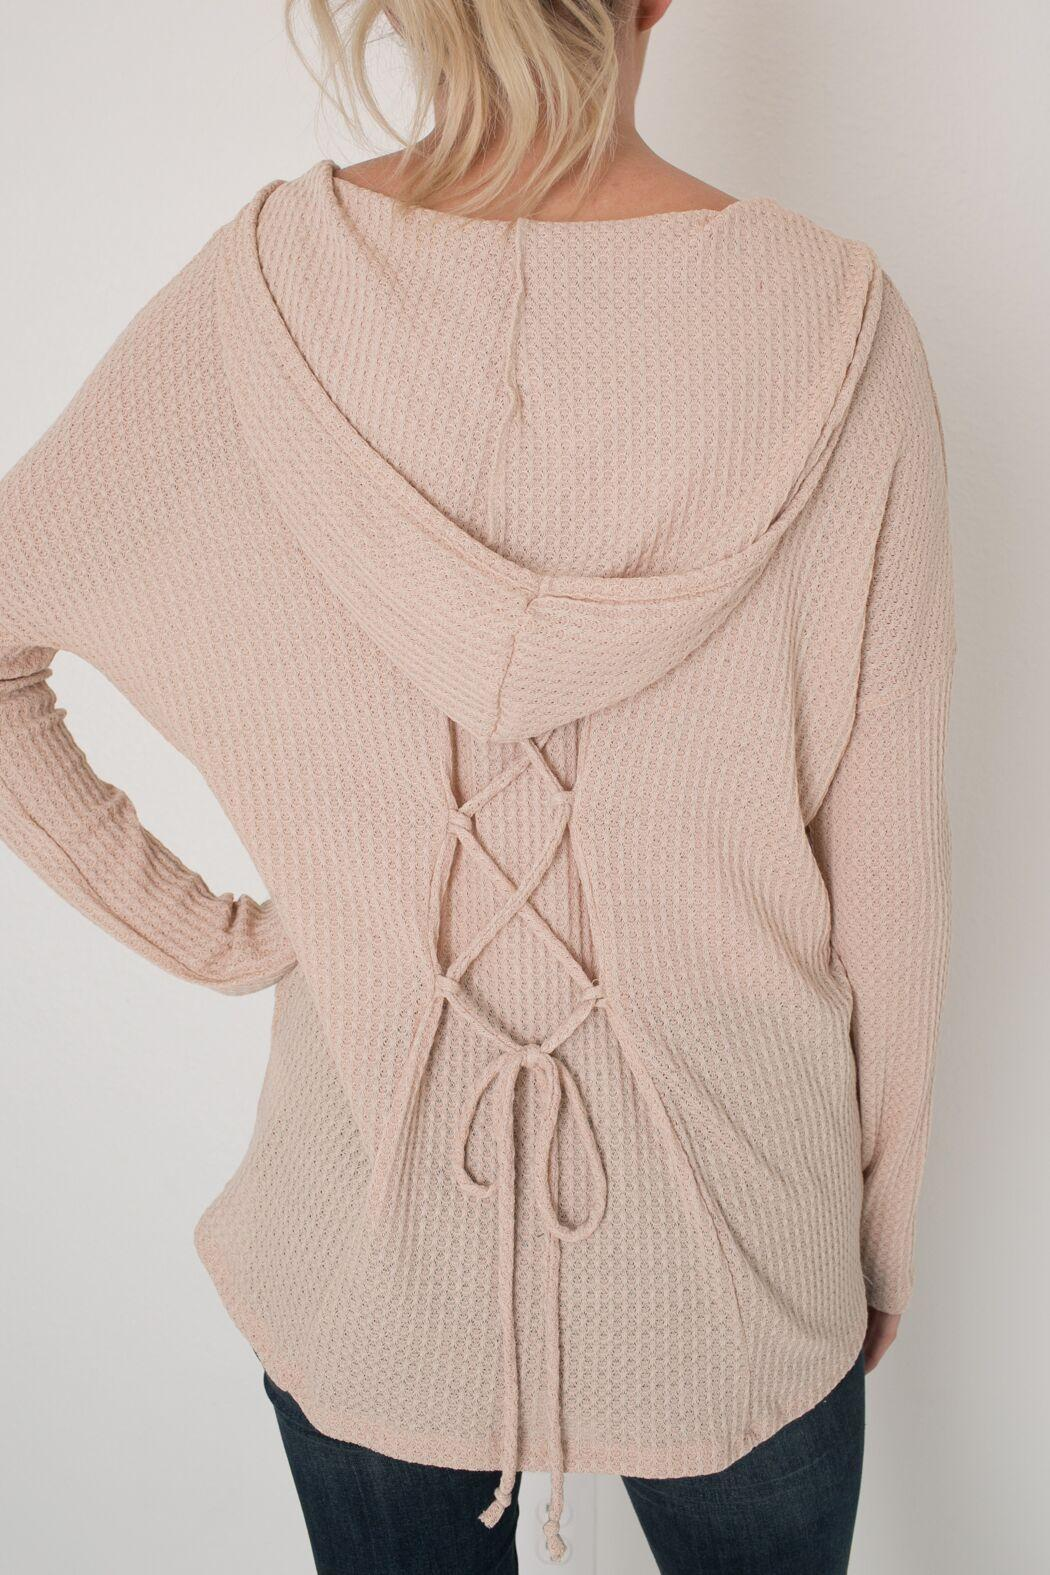 bd5f53c221e Sage V neck Thermal Top from Colorado by Apricot Lane - Centennial ...